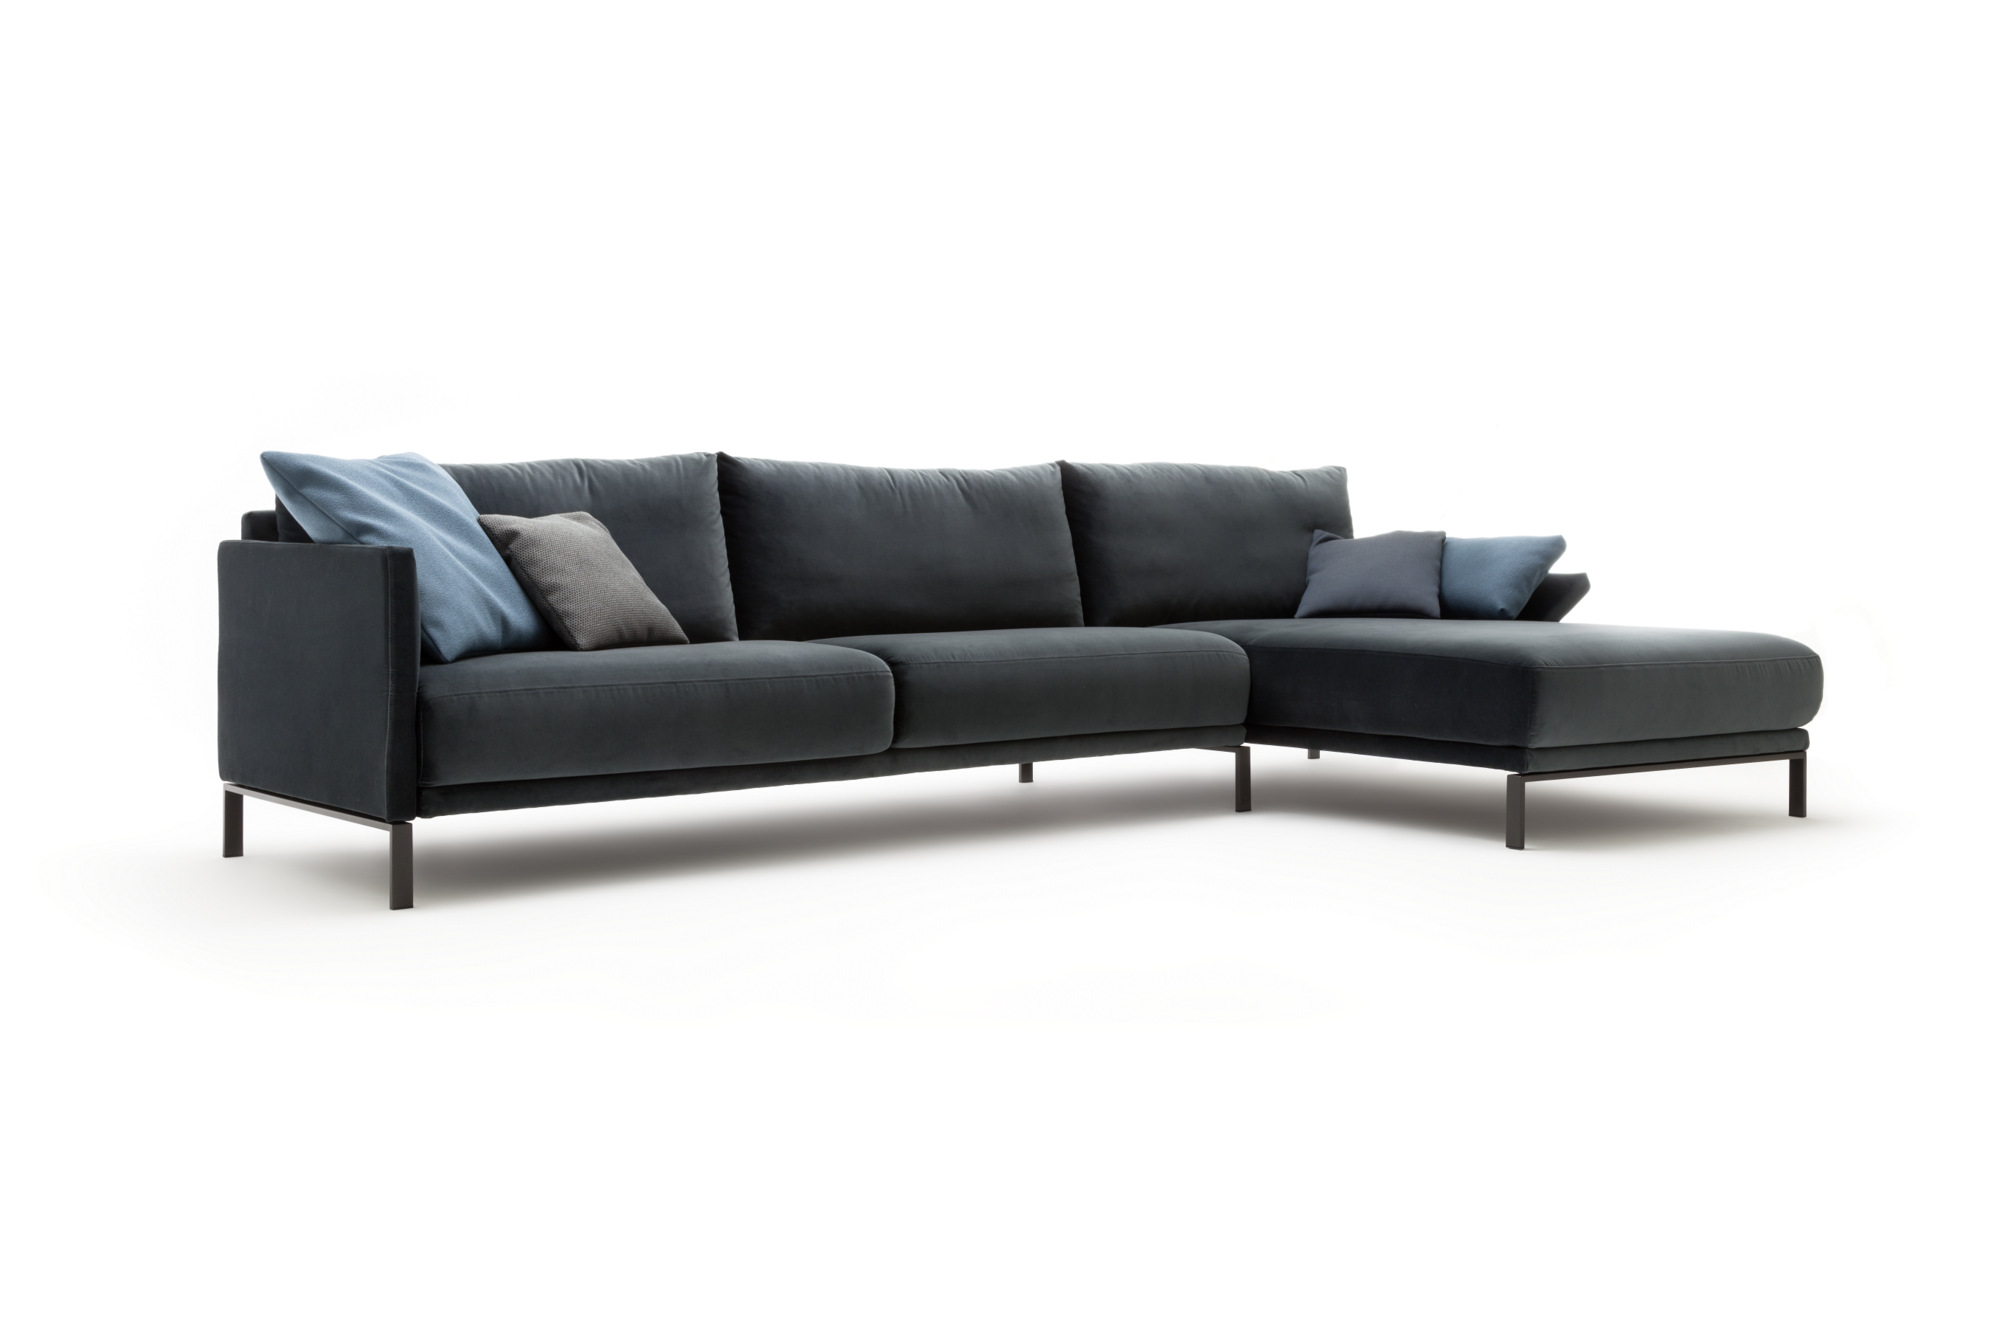 cara ecksofa kollektion cara by rolf benz design anita schmidt. Black Bedroom Furniture Sets. Home Design Ideas